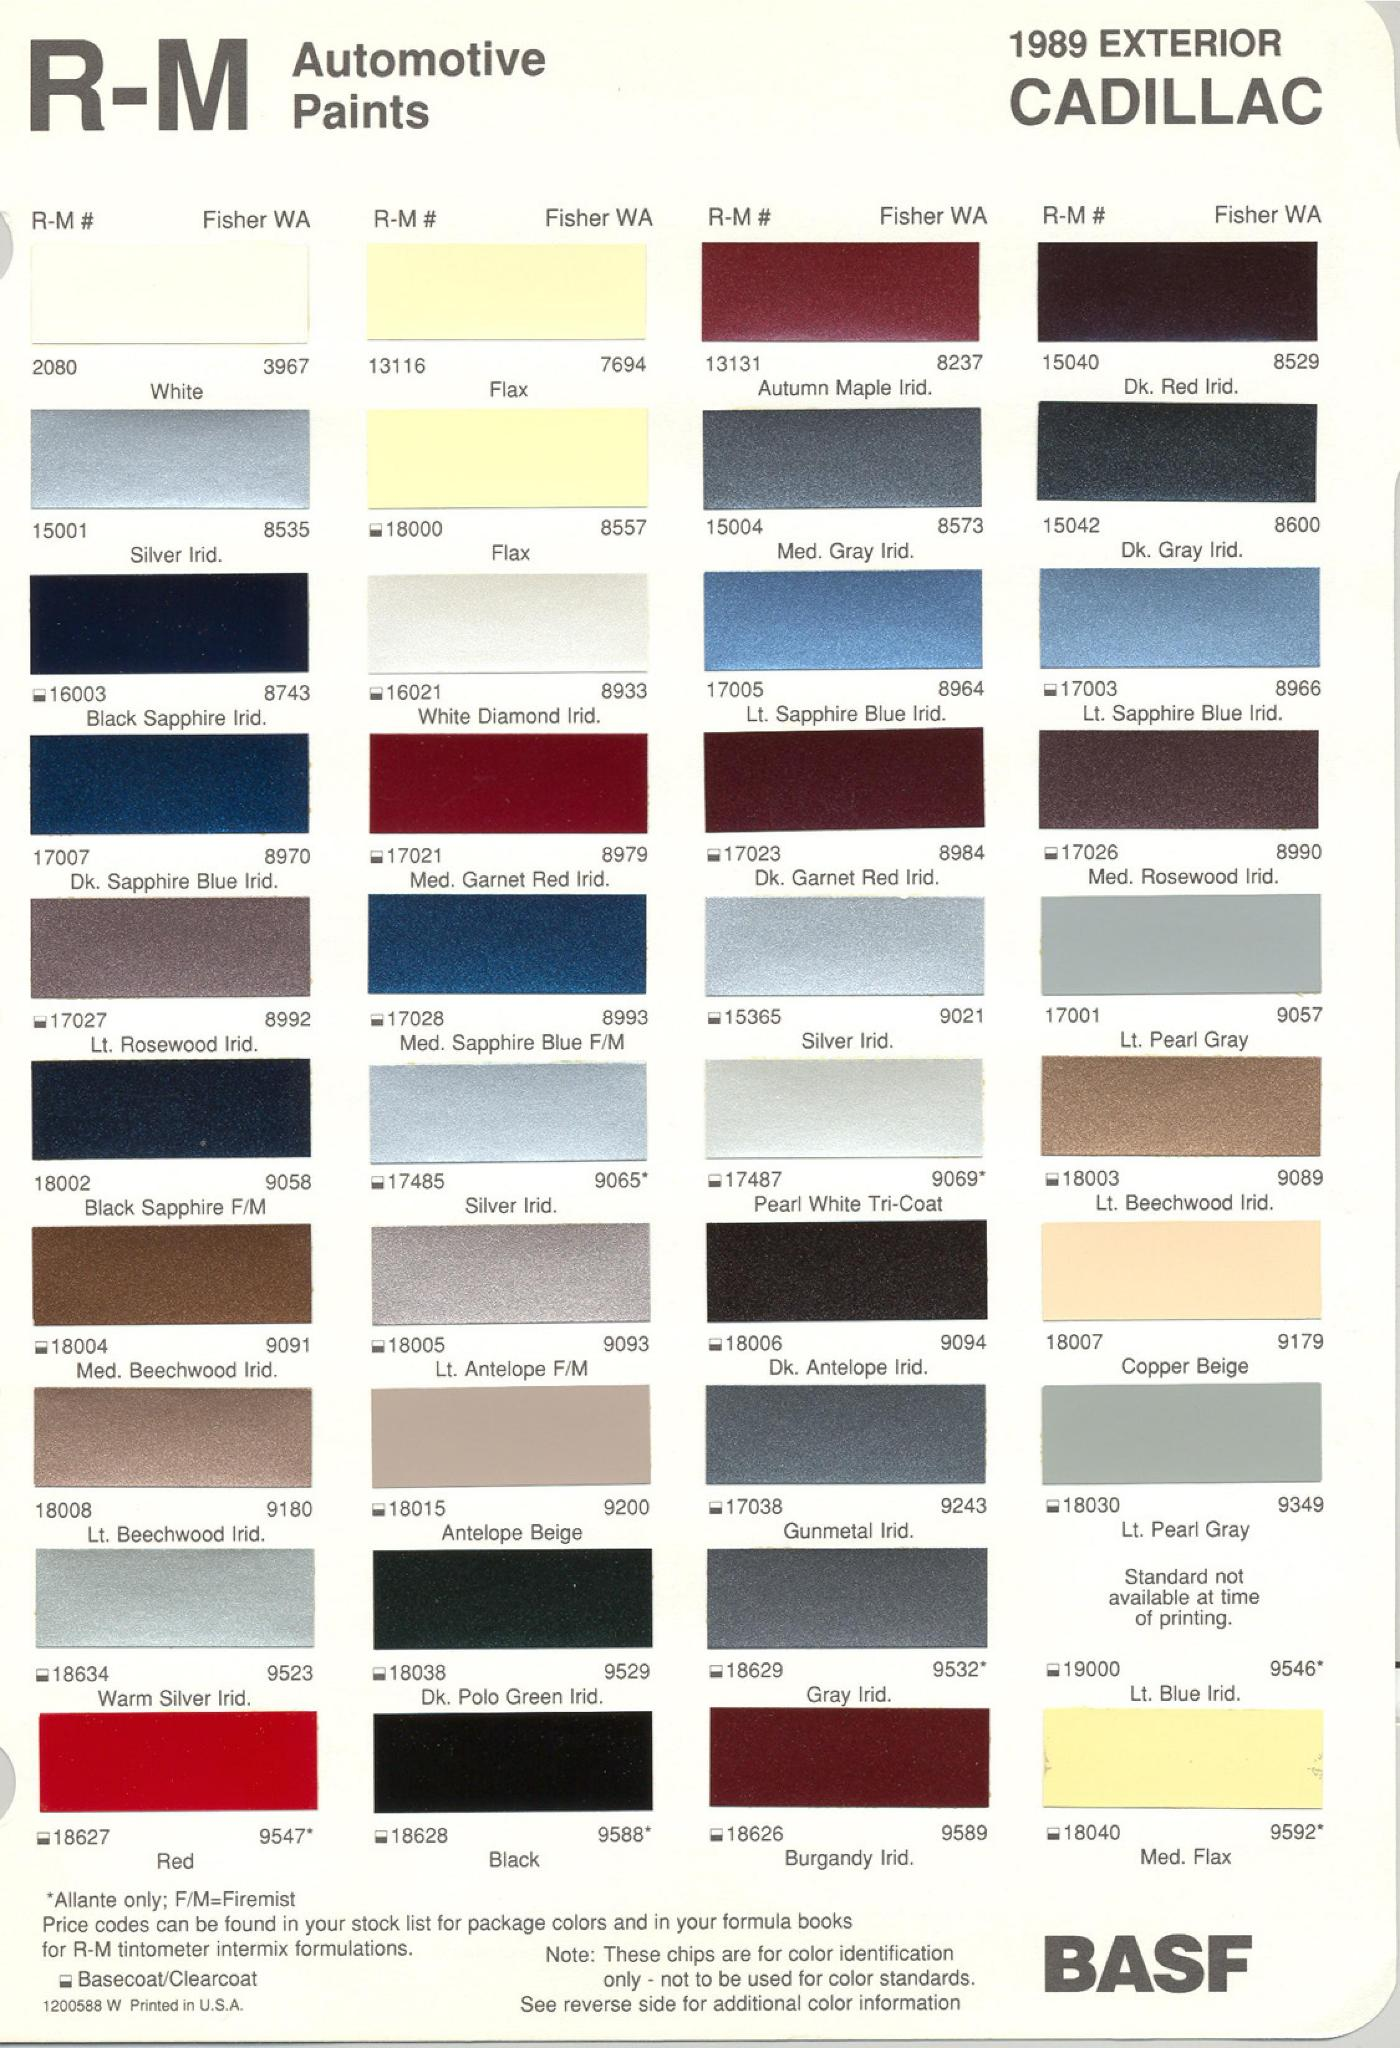 General Motors Paint (Color) Code Chart 1989